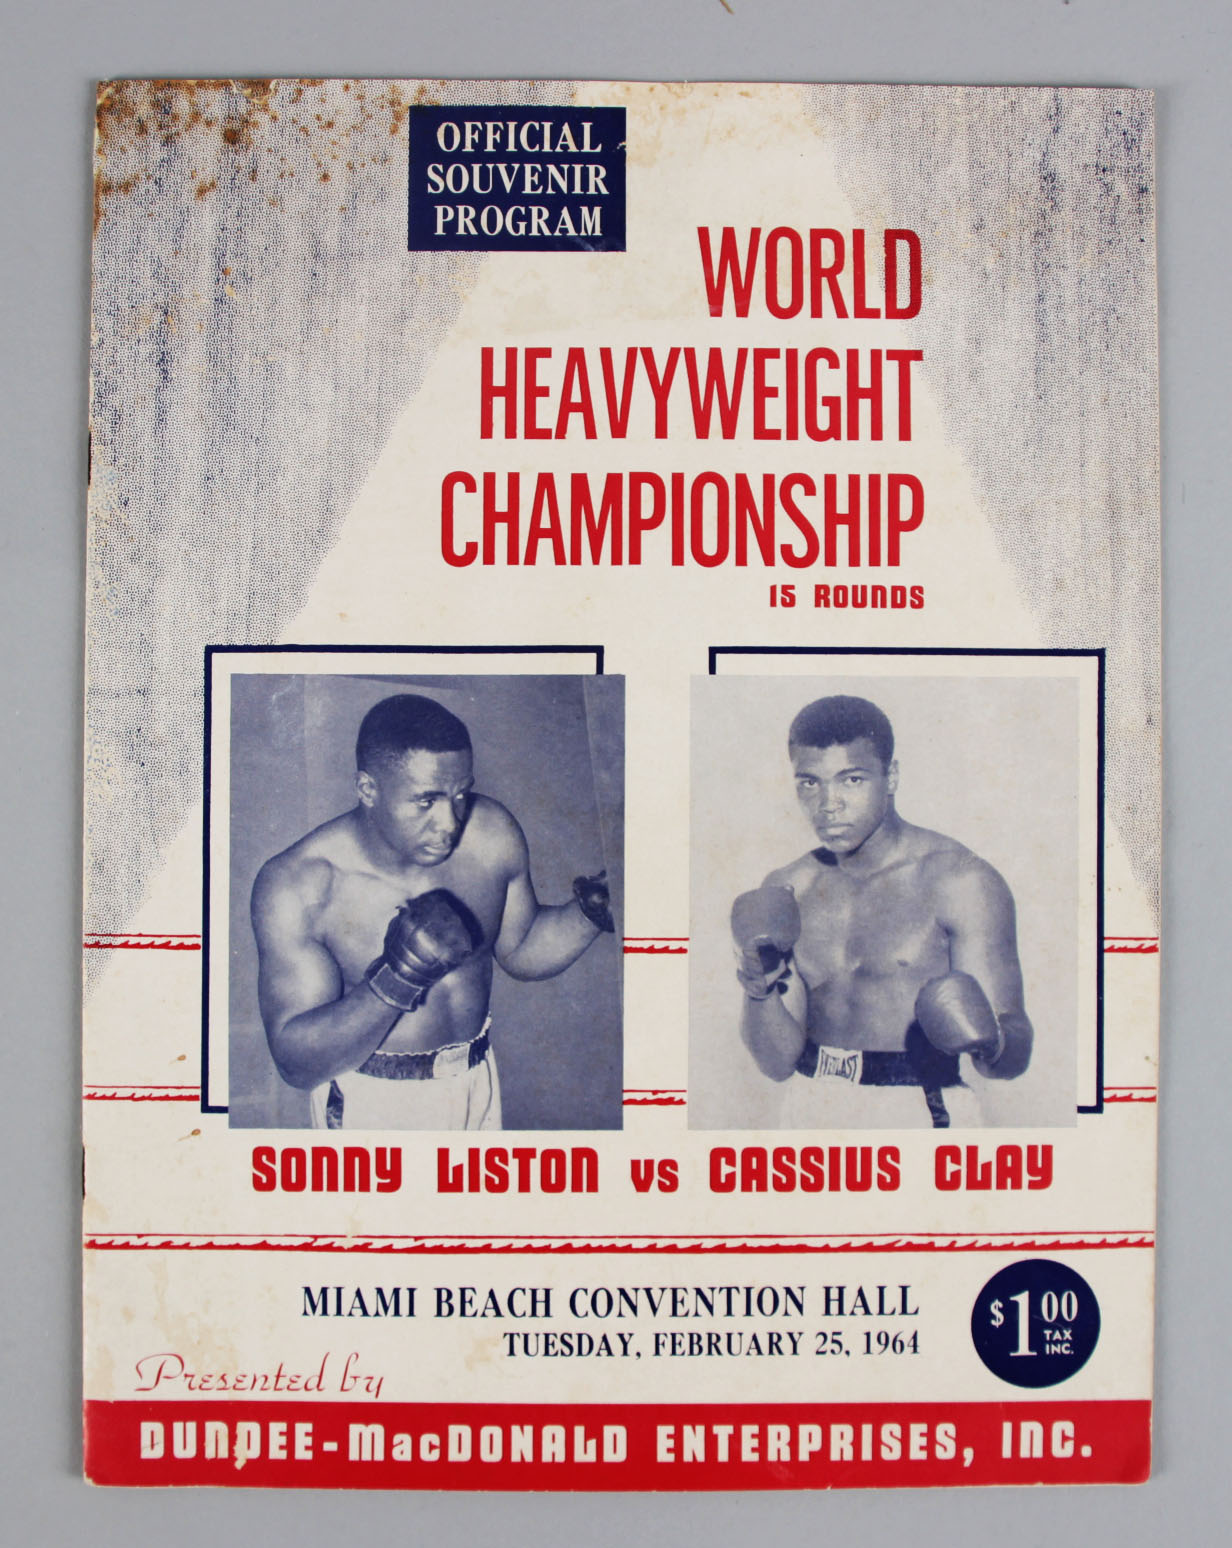 1964 SONNY LISTON VS. CASSIUS CLAY FIRST HEAVYWEIGHT CHAMPIONSHIP FIGHT PROGRAM